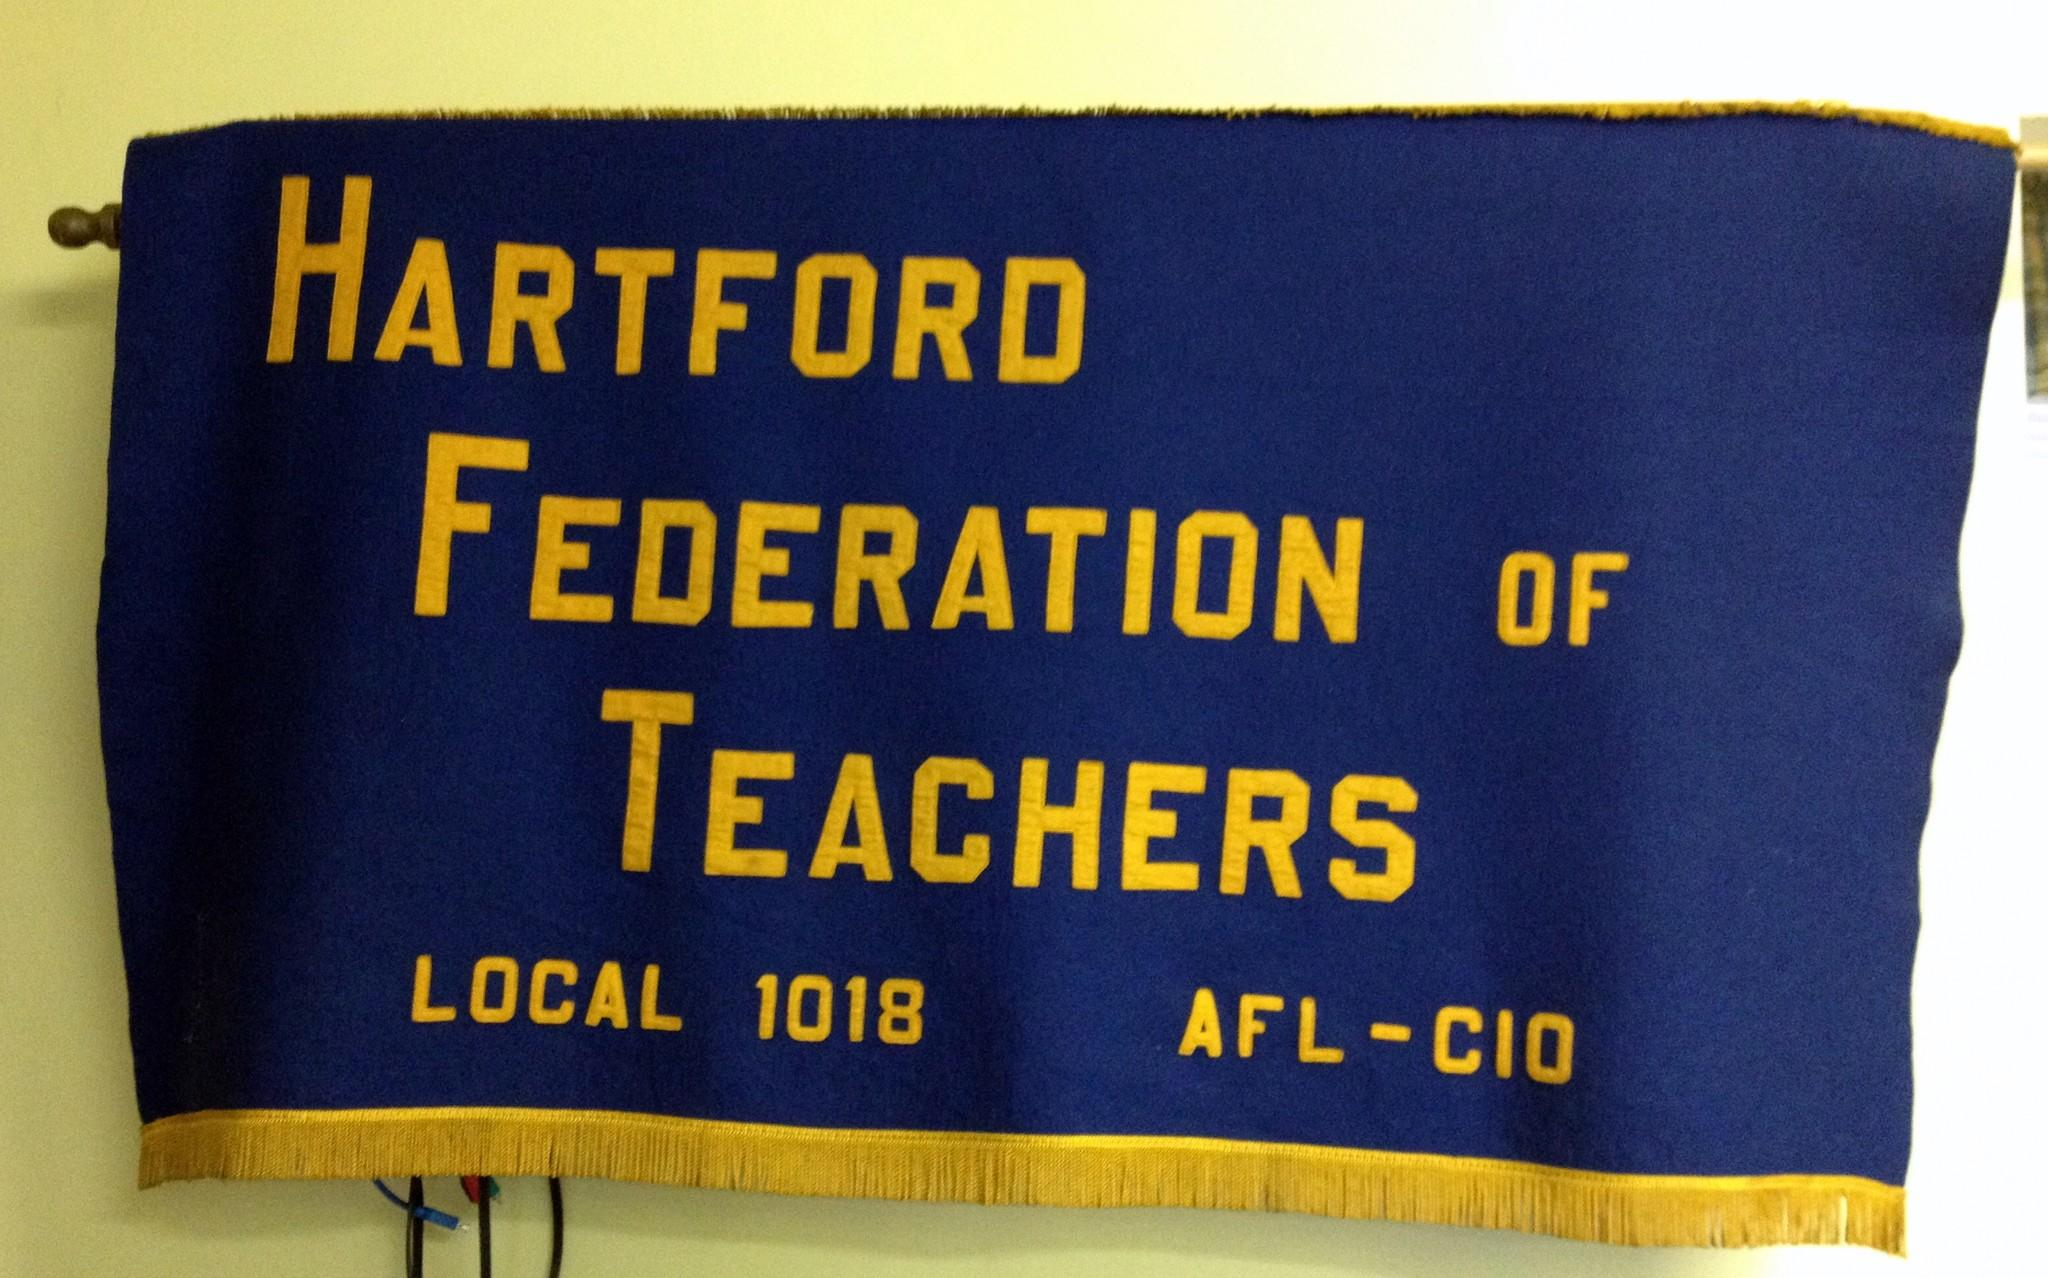 A banner for the Hartford Federation of Teachers hangs on the wall inside union headquarters.